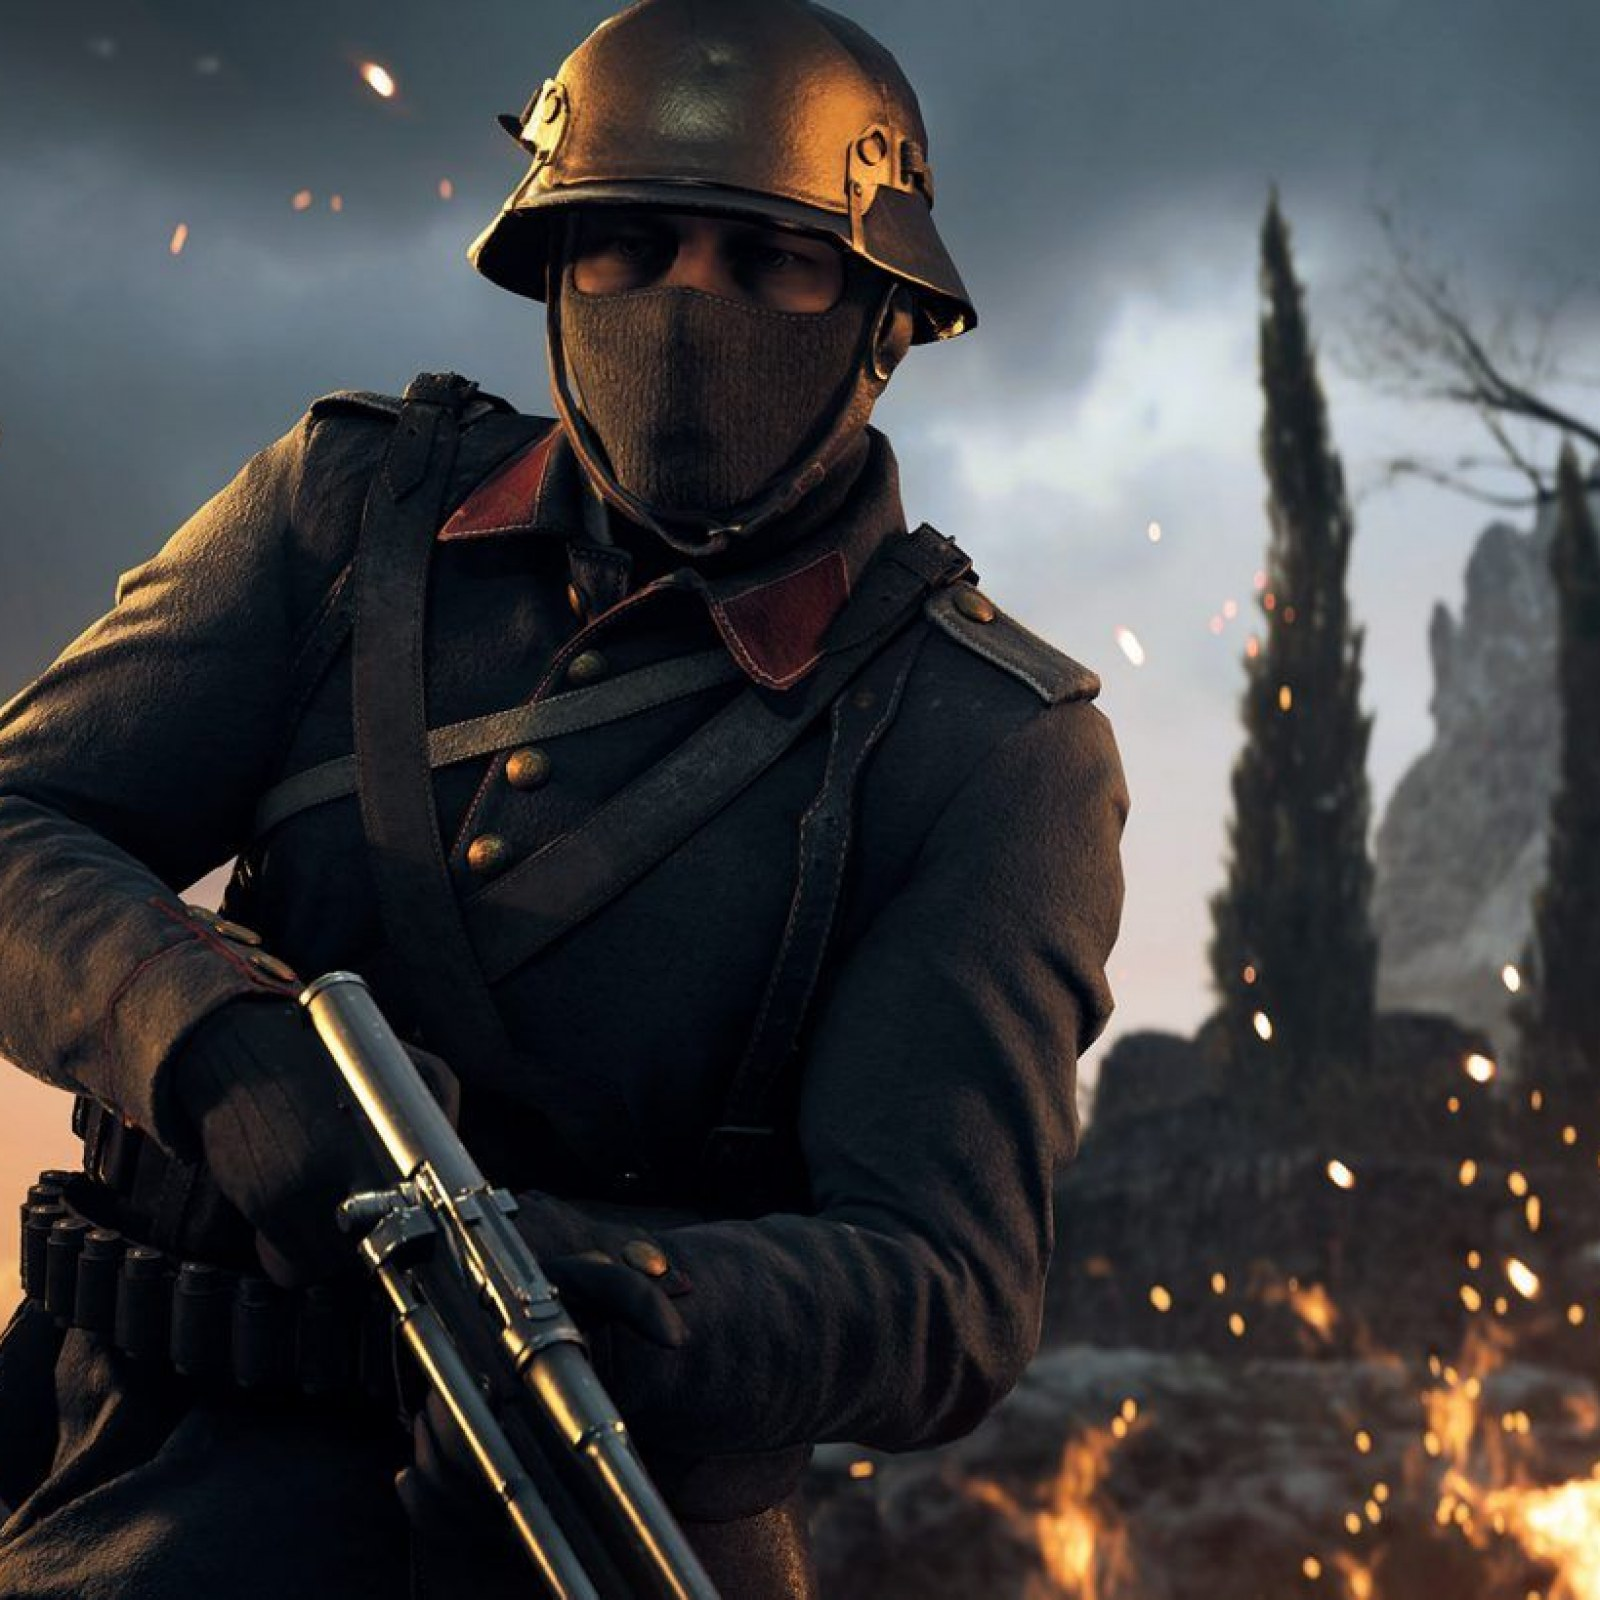 Battlefield 1' Weapons Crate Update: 1 23 Patch Notes Now Available